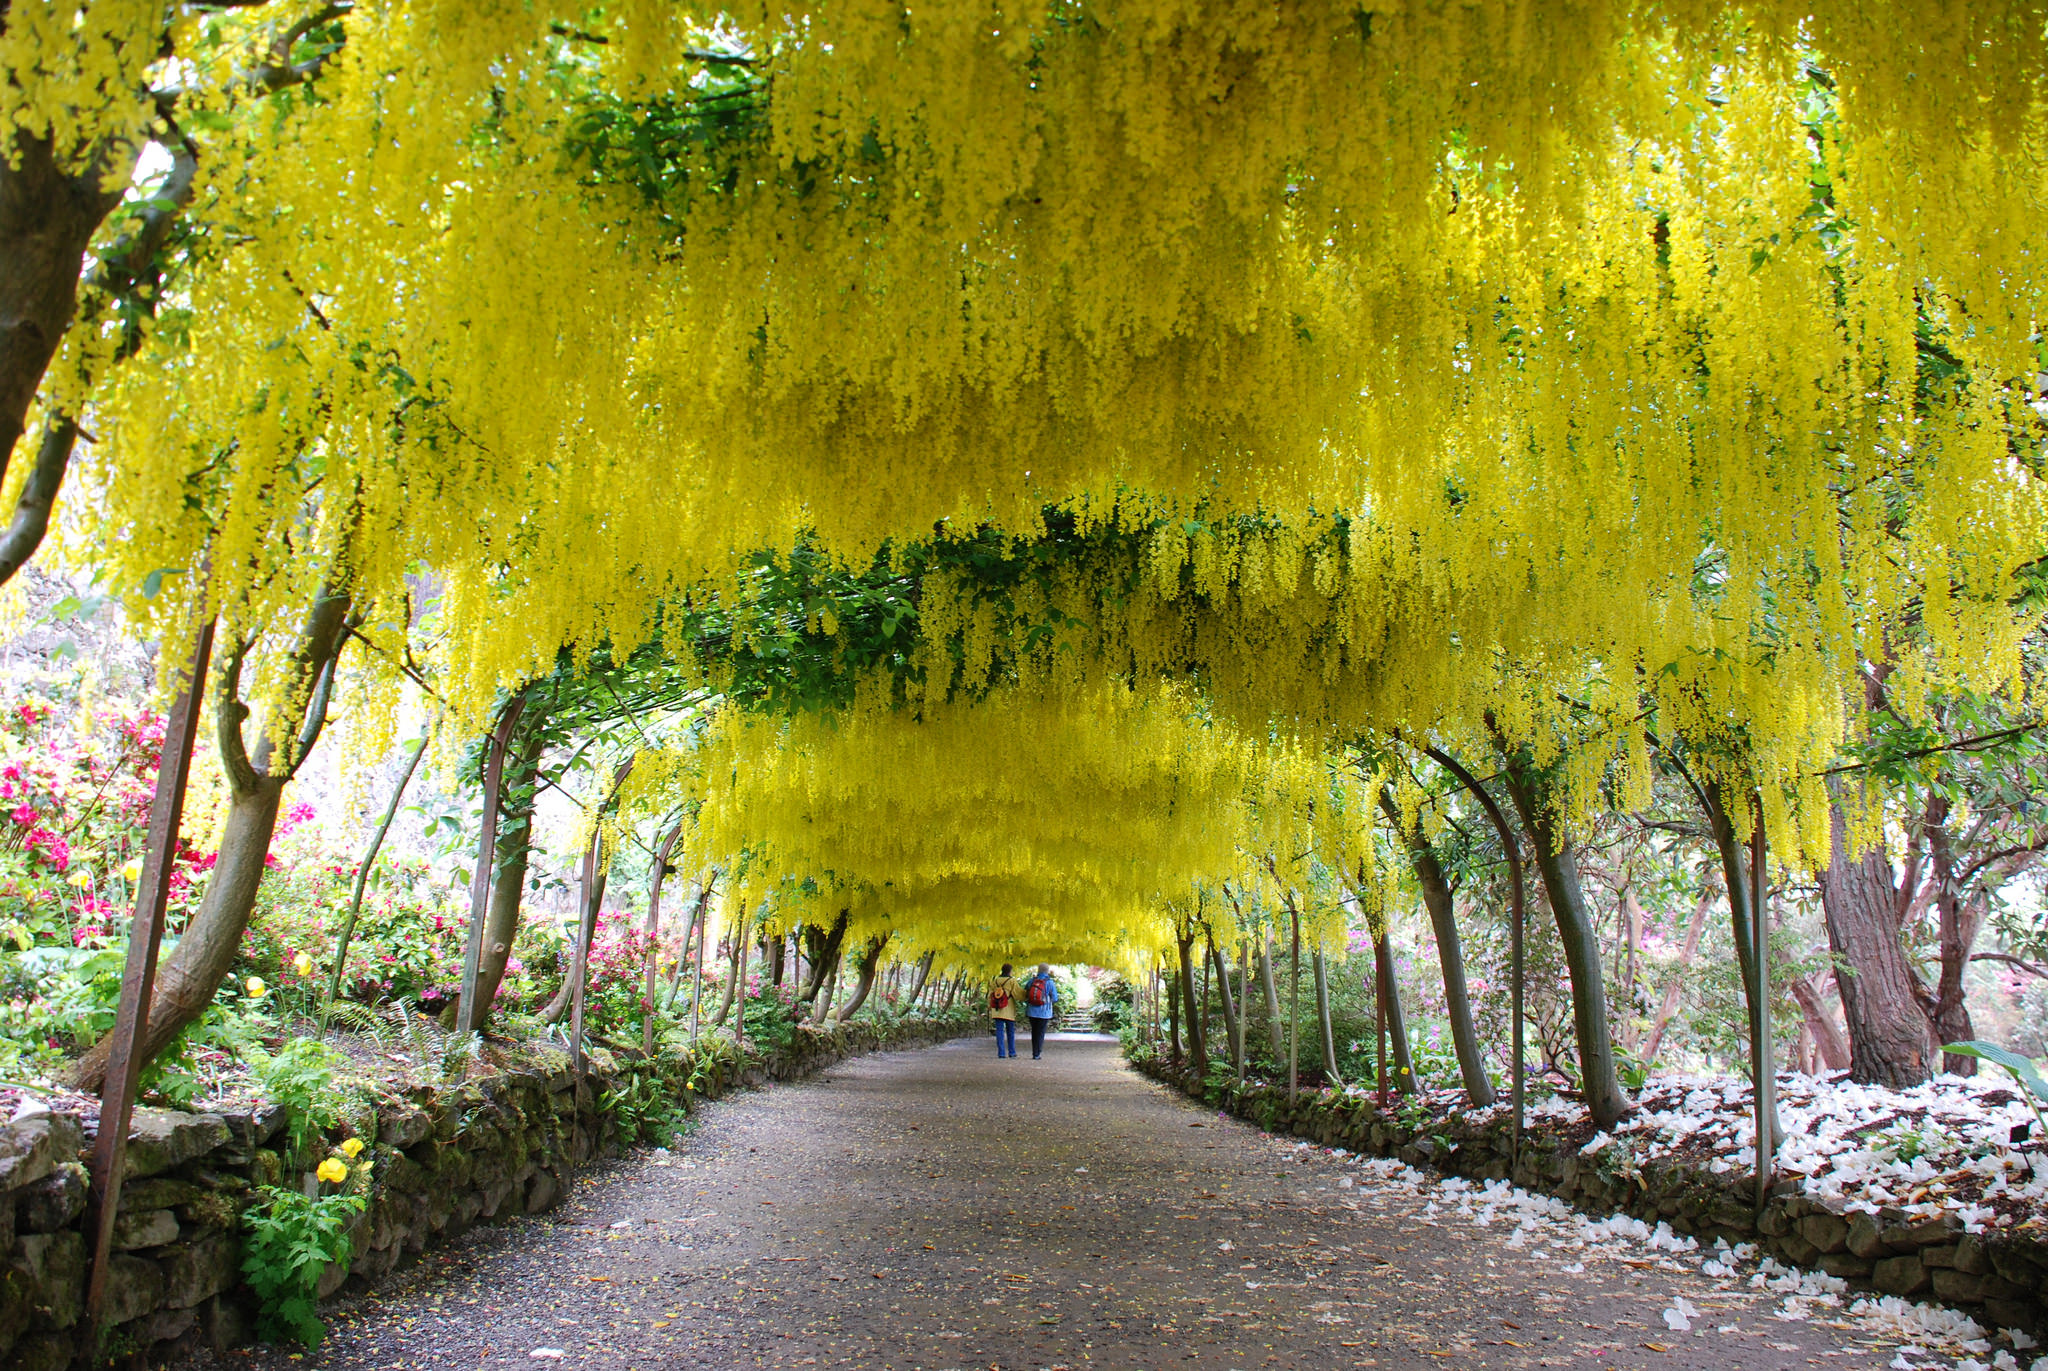 The Laburnum Arch at Bodnant Gardens